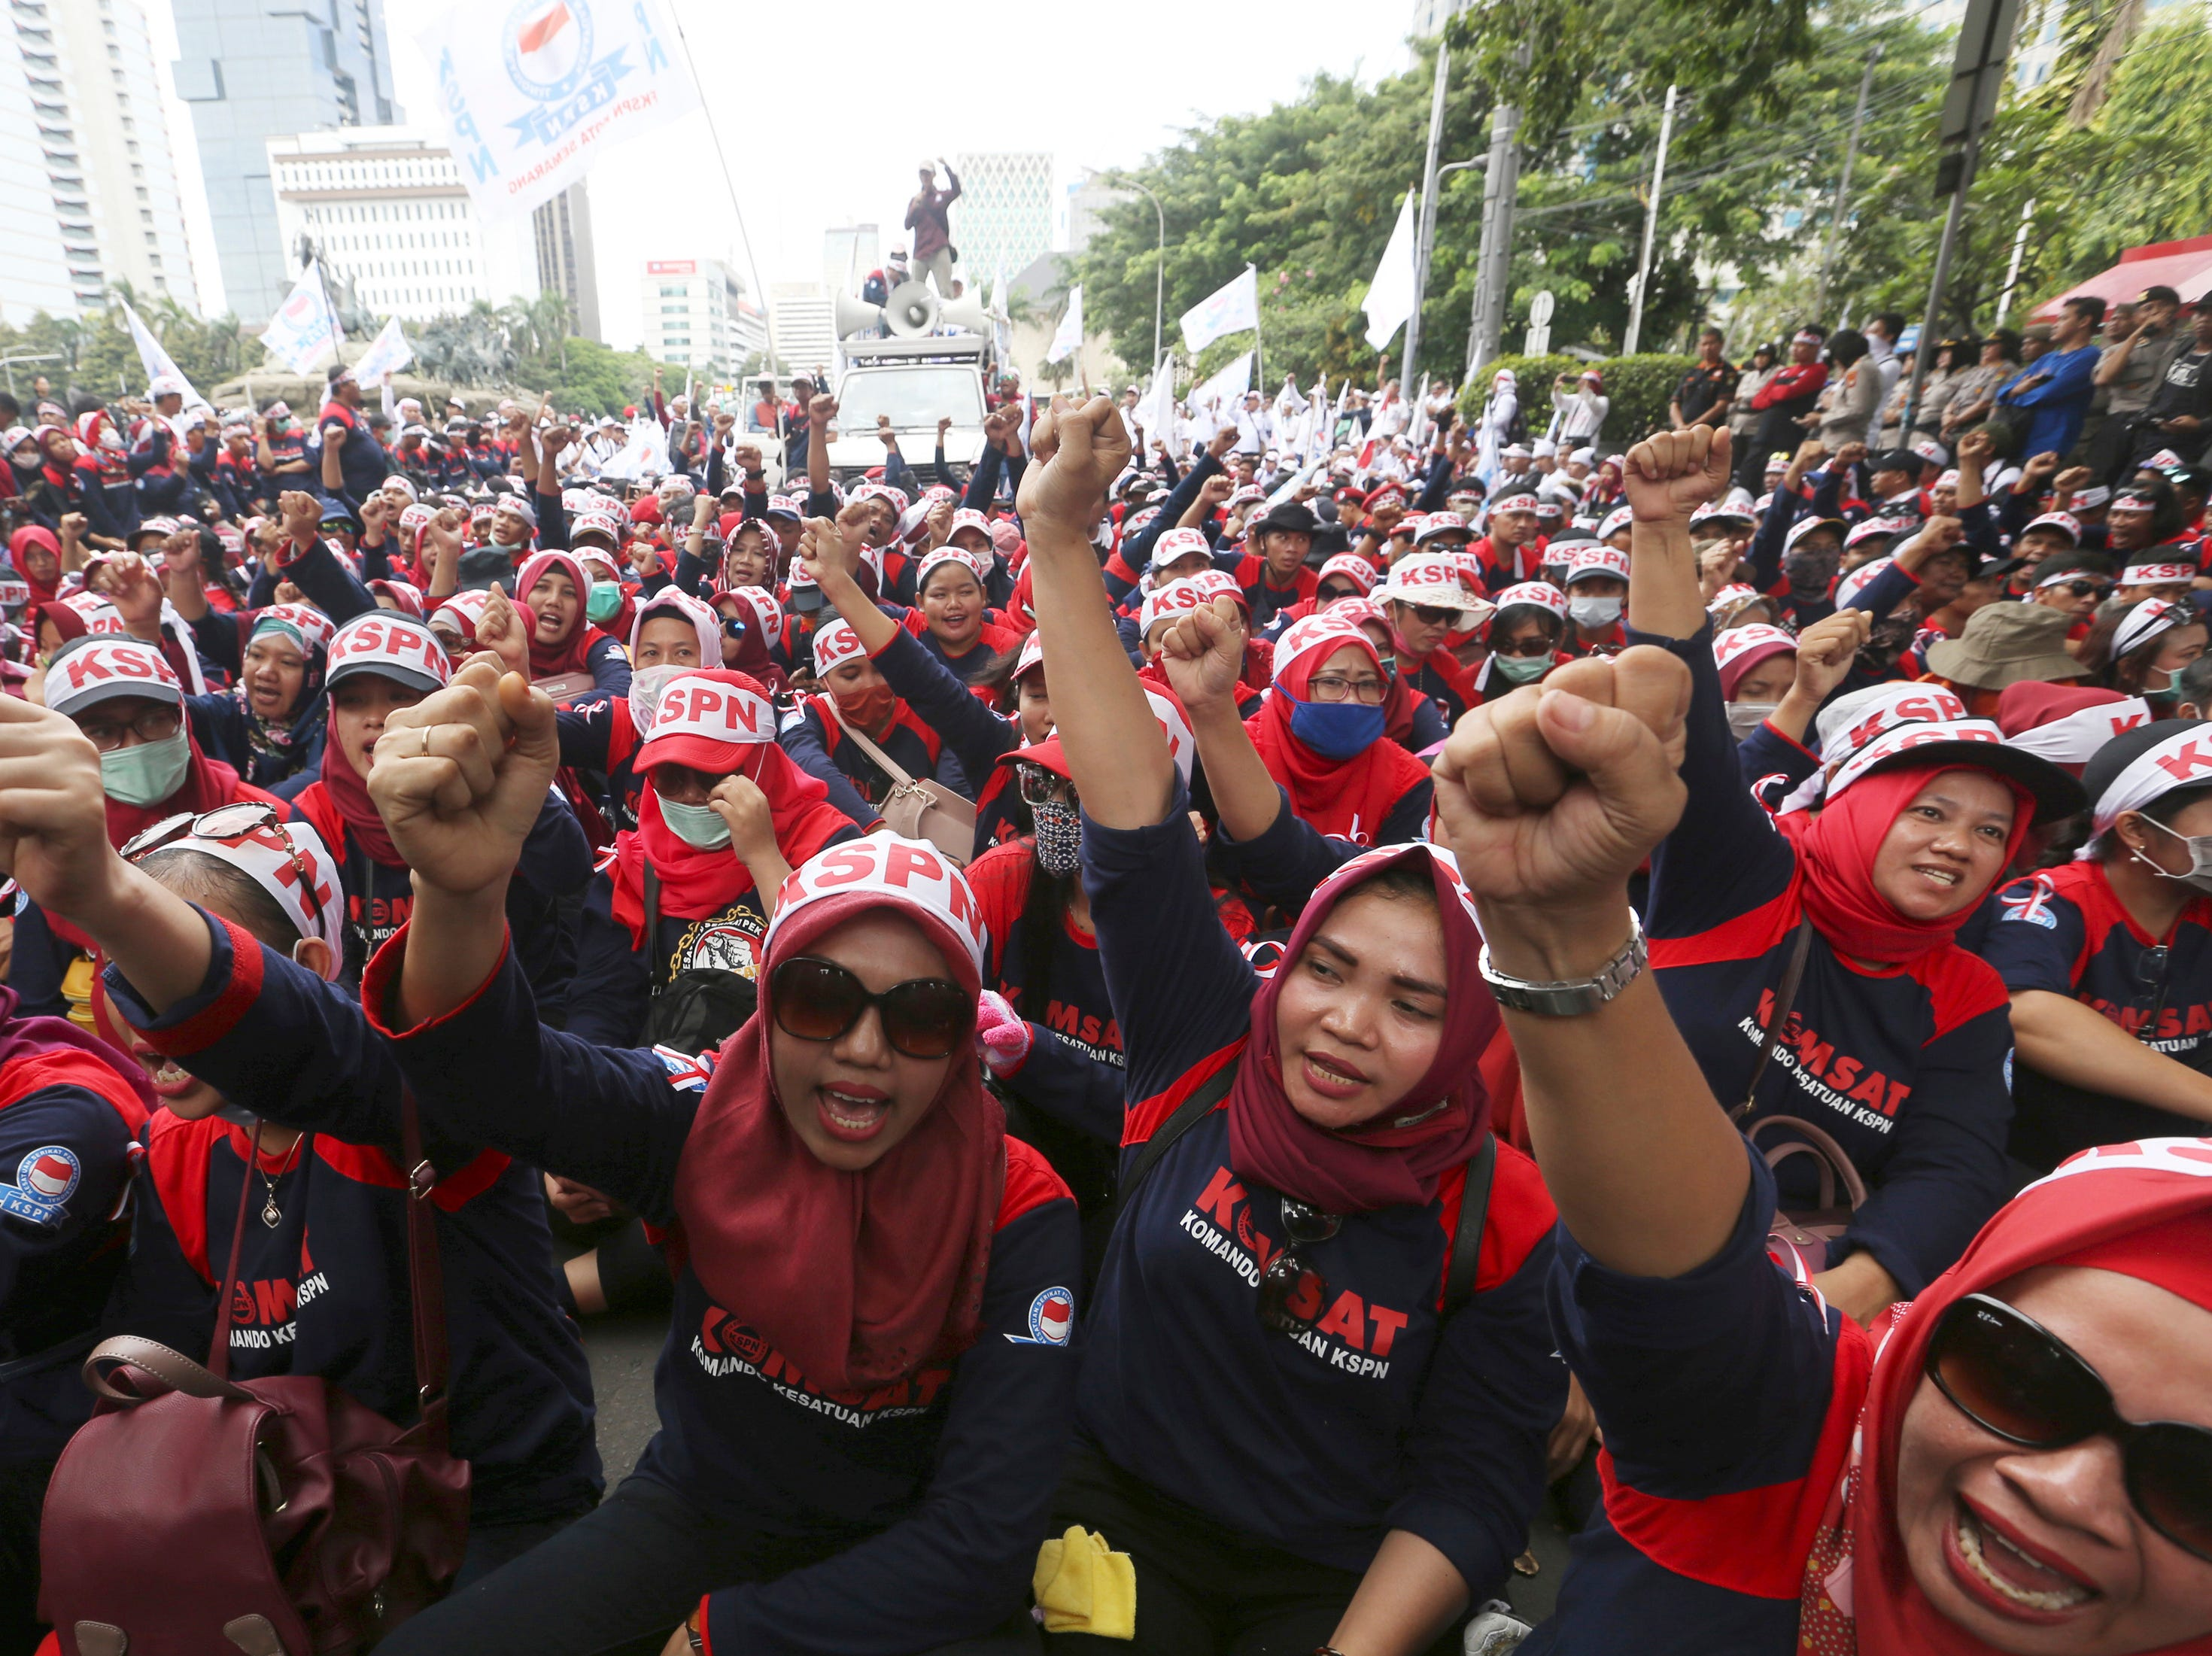 Workers shout slogans during a May Day rally in Jakarta, Indonesia, Wednesday, May 1, 2019. Thousands of workers attended the rally urging the government to raise minimum wages, ban outsourcing practices, provide free health care and improve working conditions.